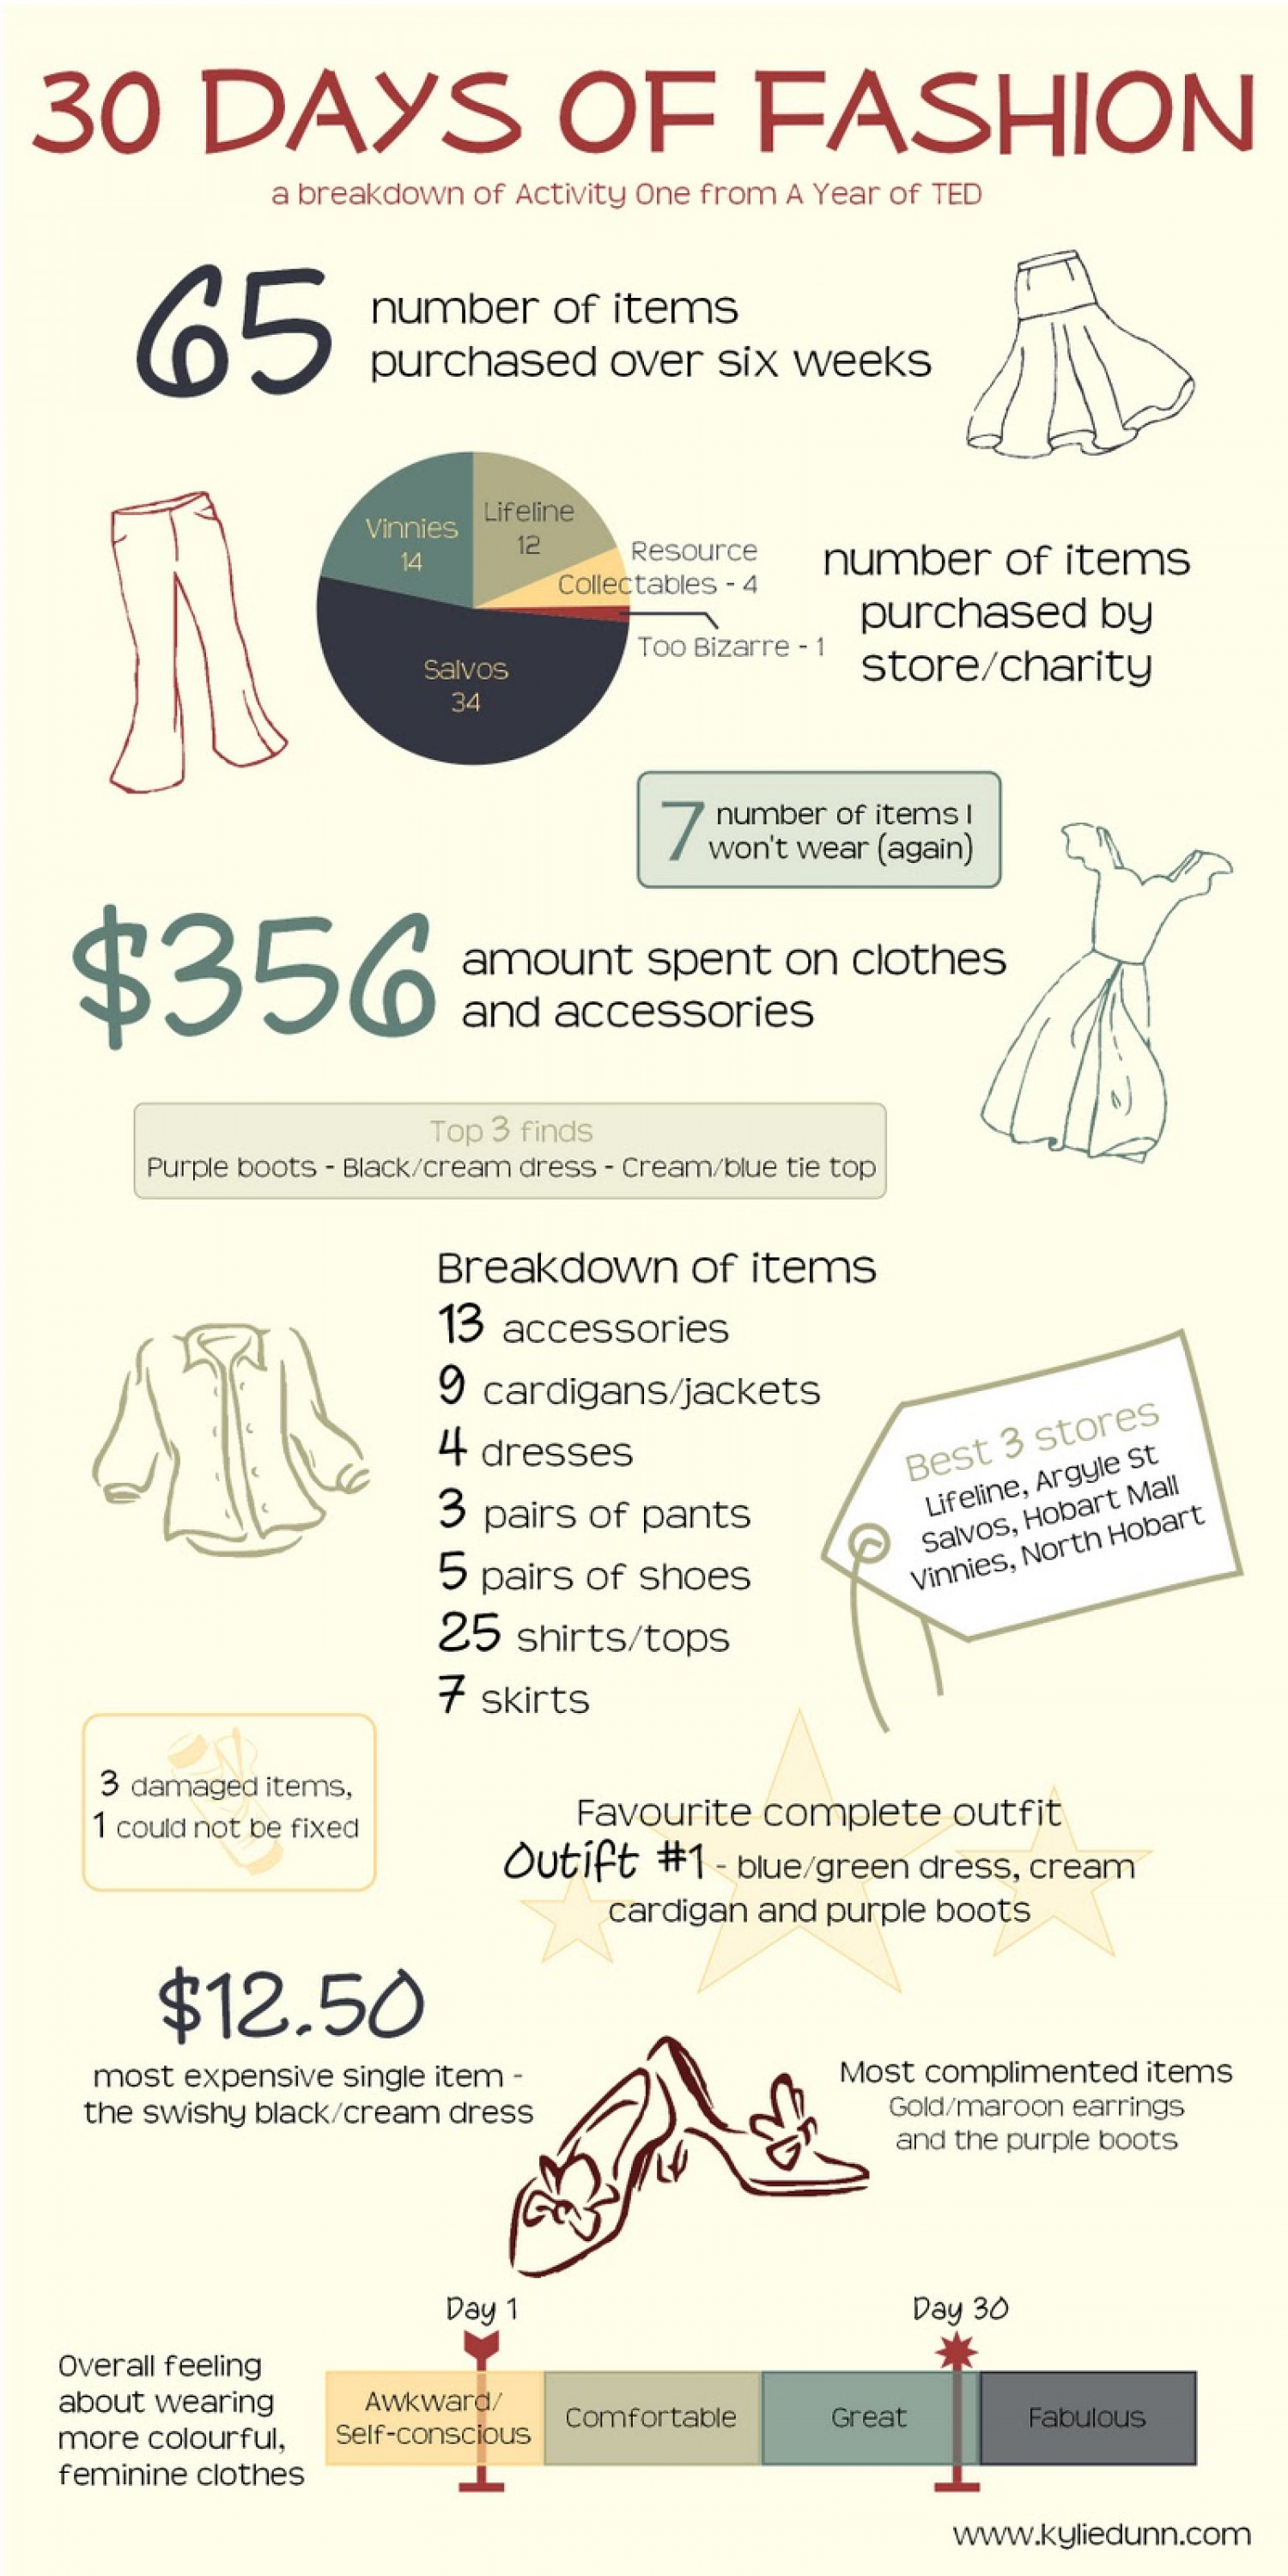 30 Days of Fashion  Infographic